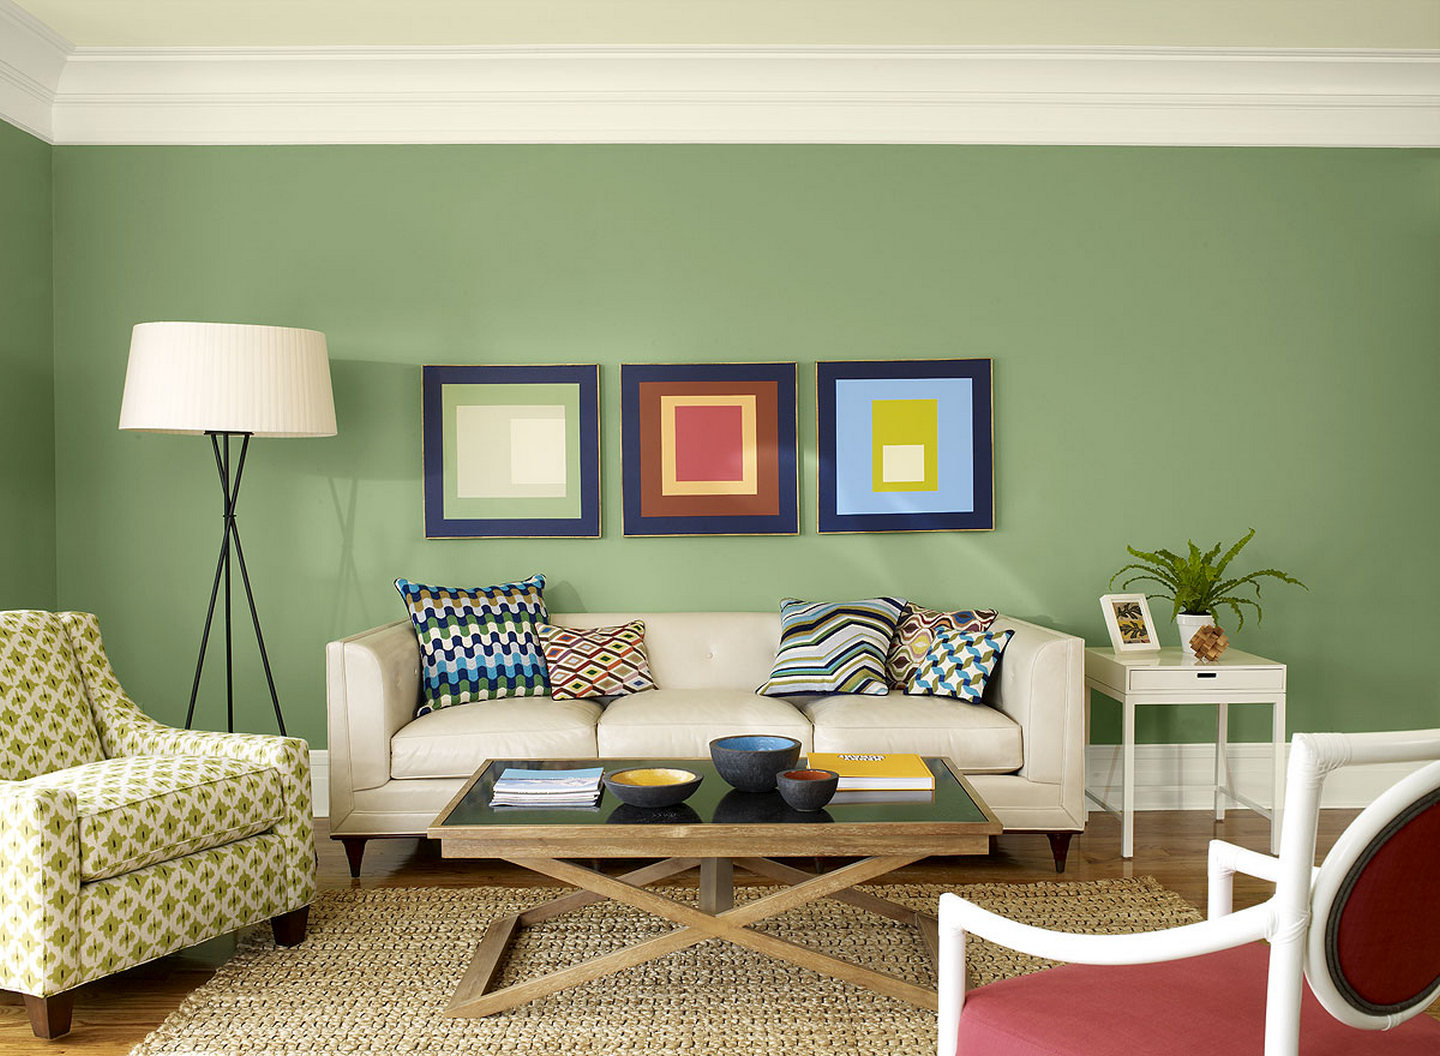 Green Living Room Green Wall White Ceiling Framed Pictures Down Light White  Side Table Red Chair Part 93